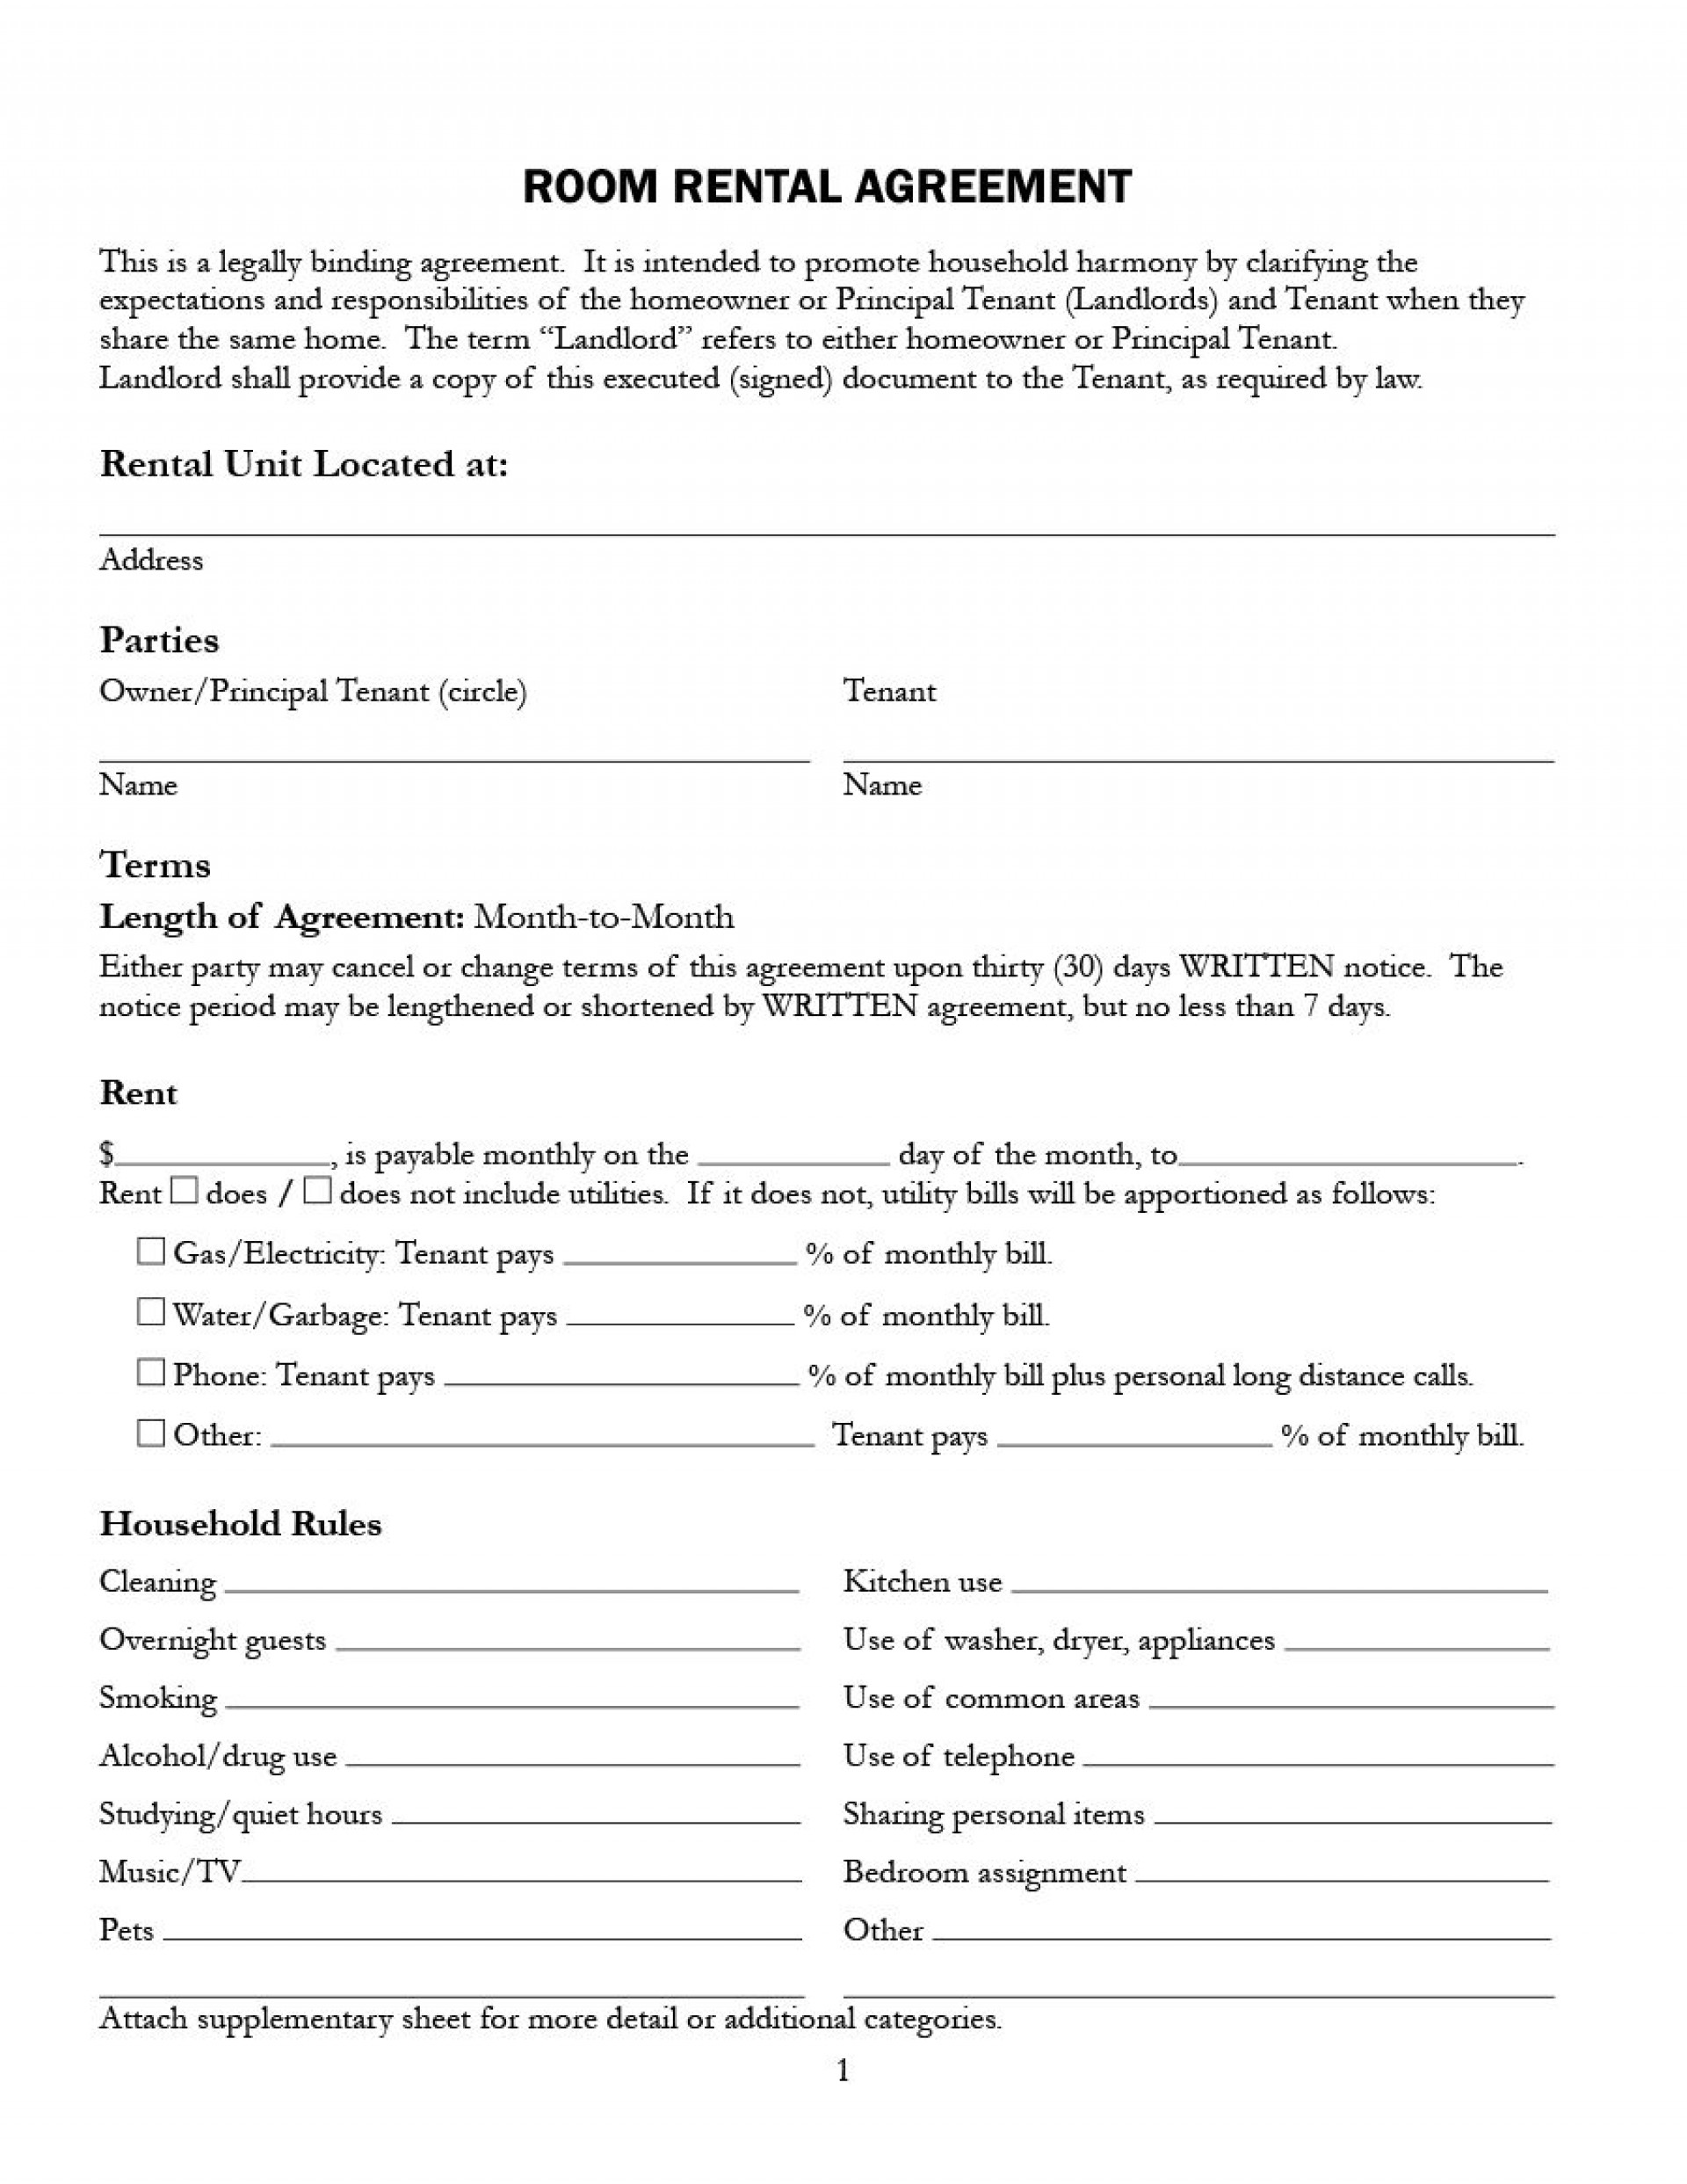 009 Archaicawful Room Rental Agreement Template Alberta Example 1920